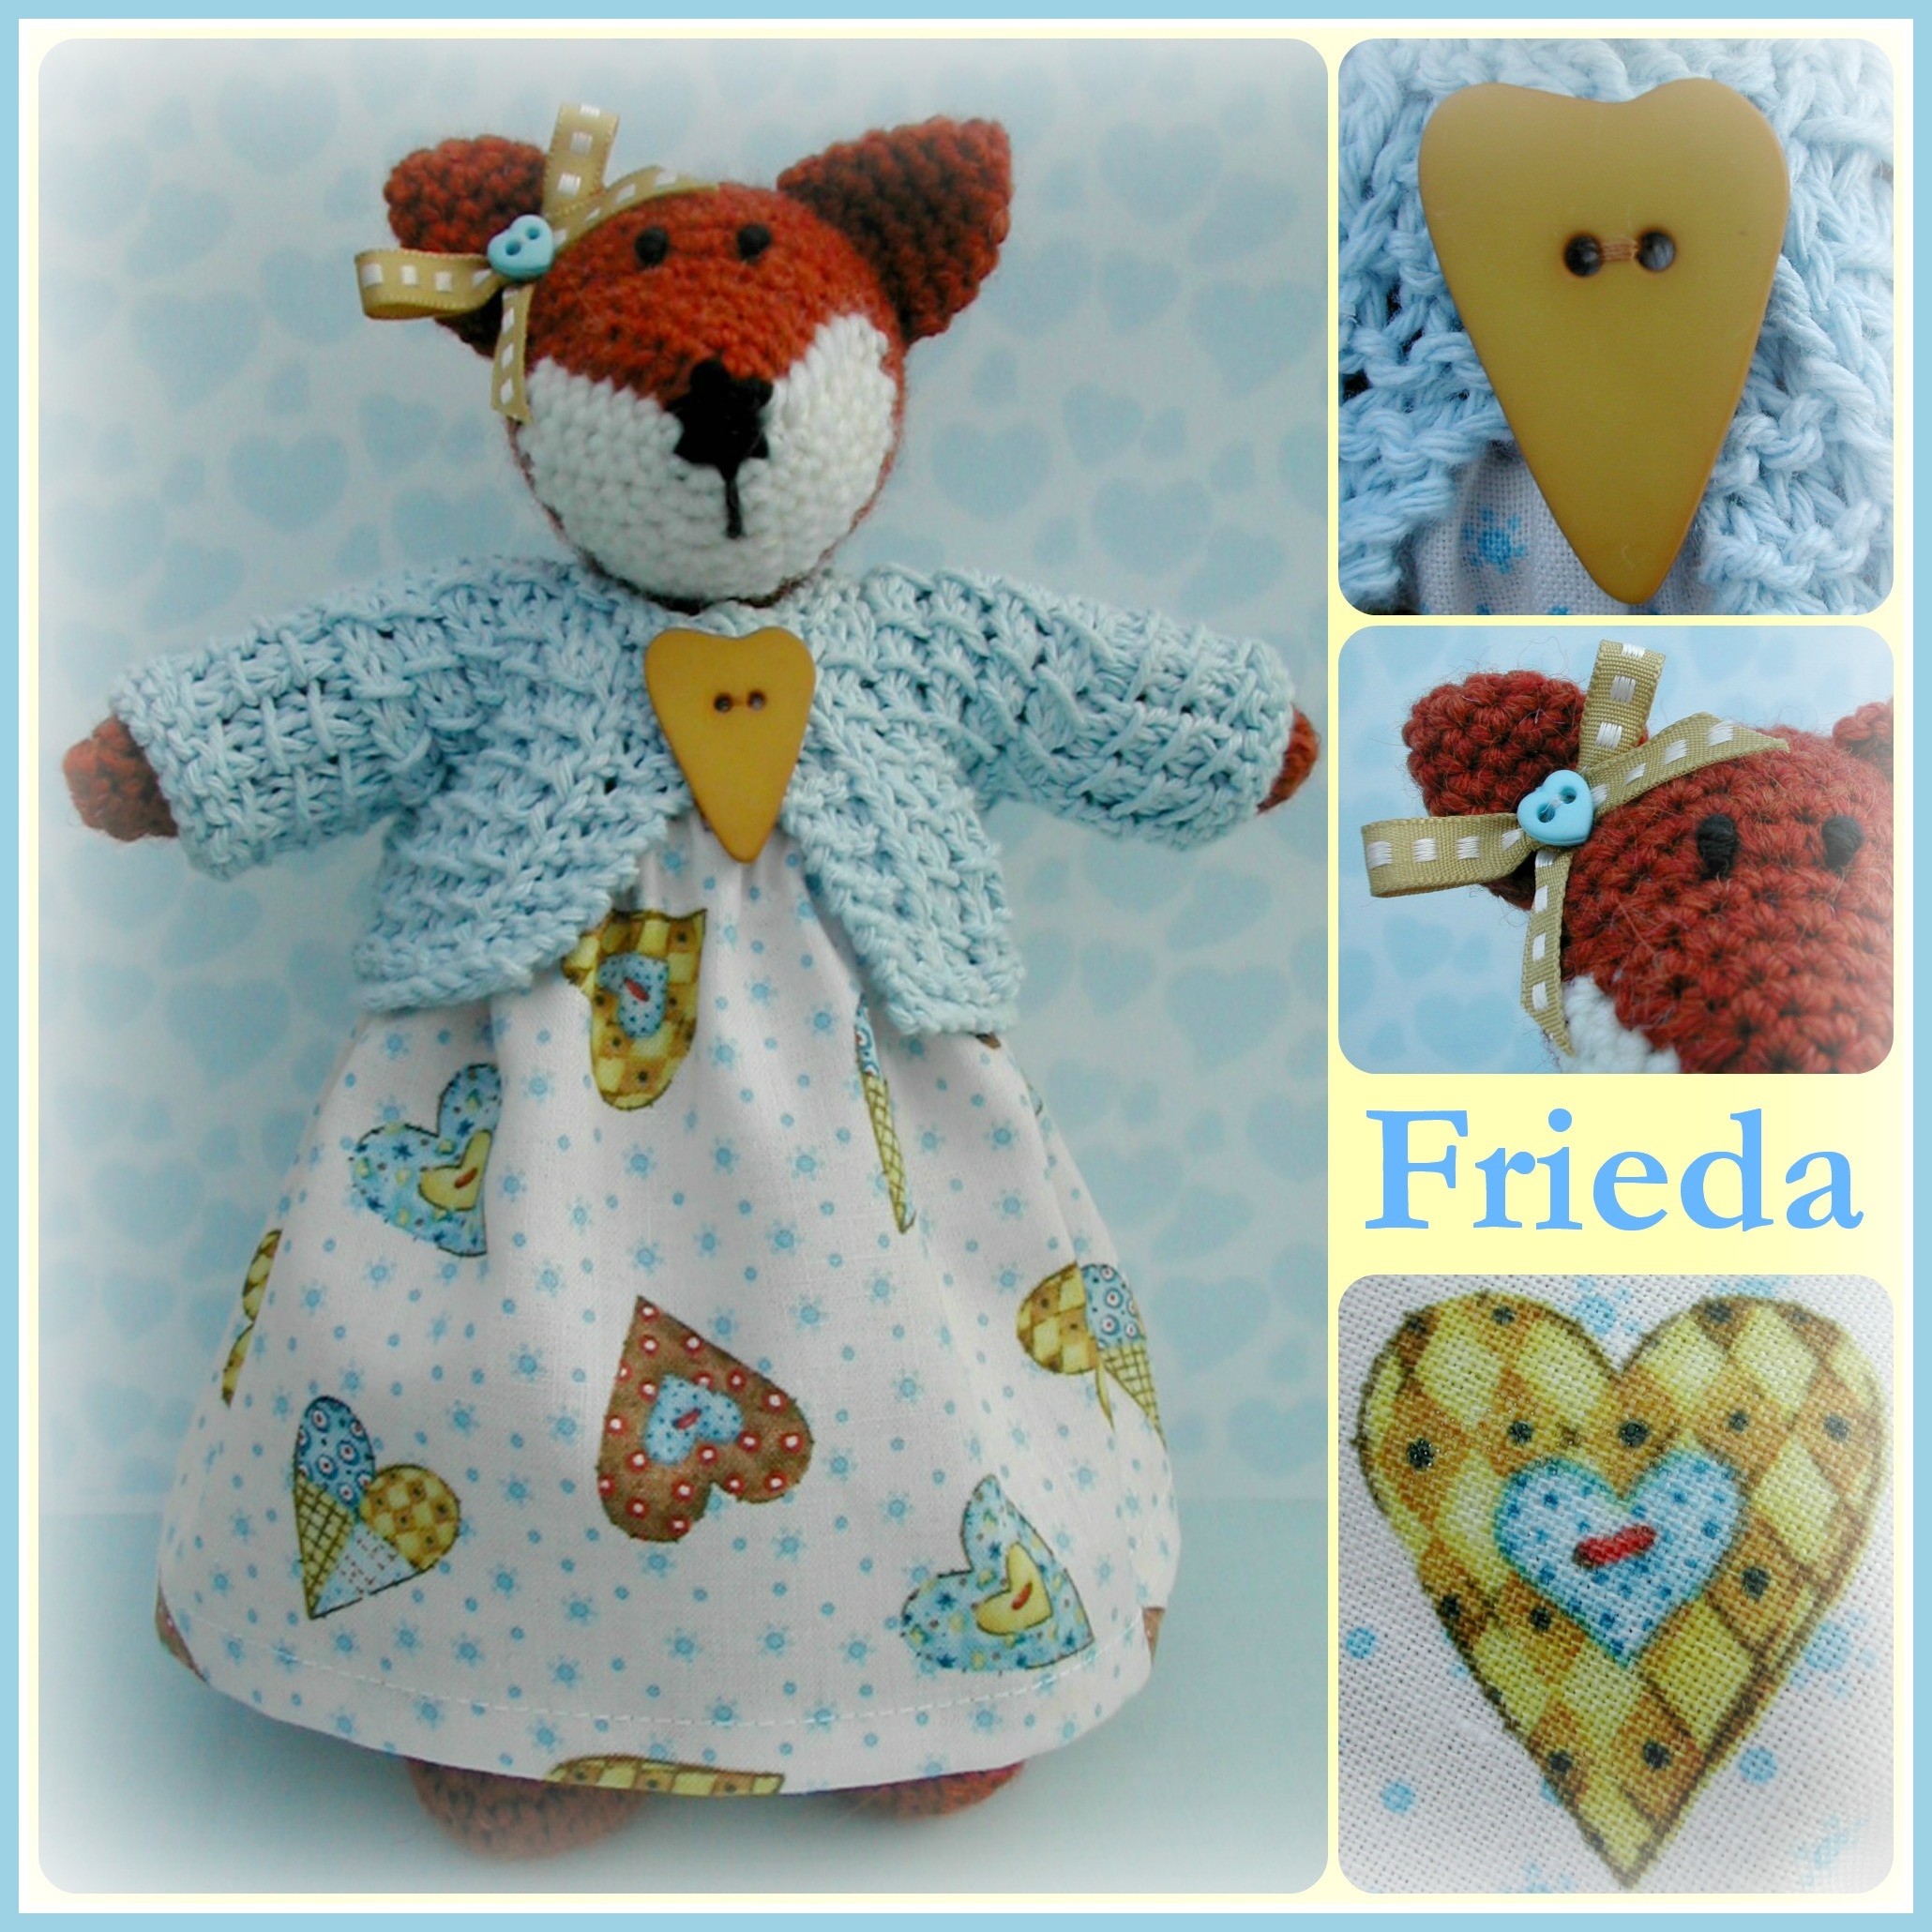 Frieda Collage